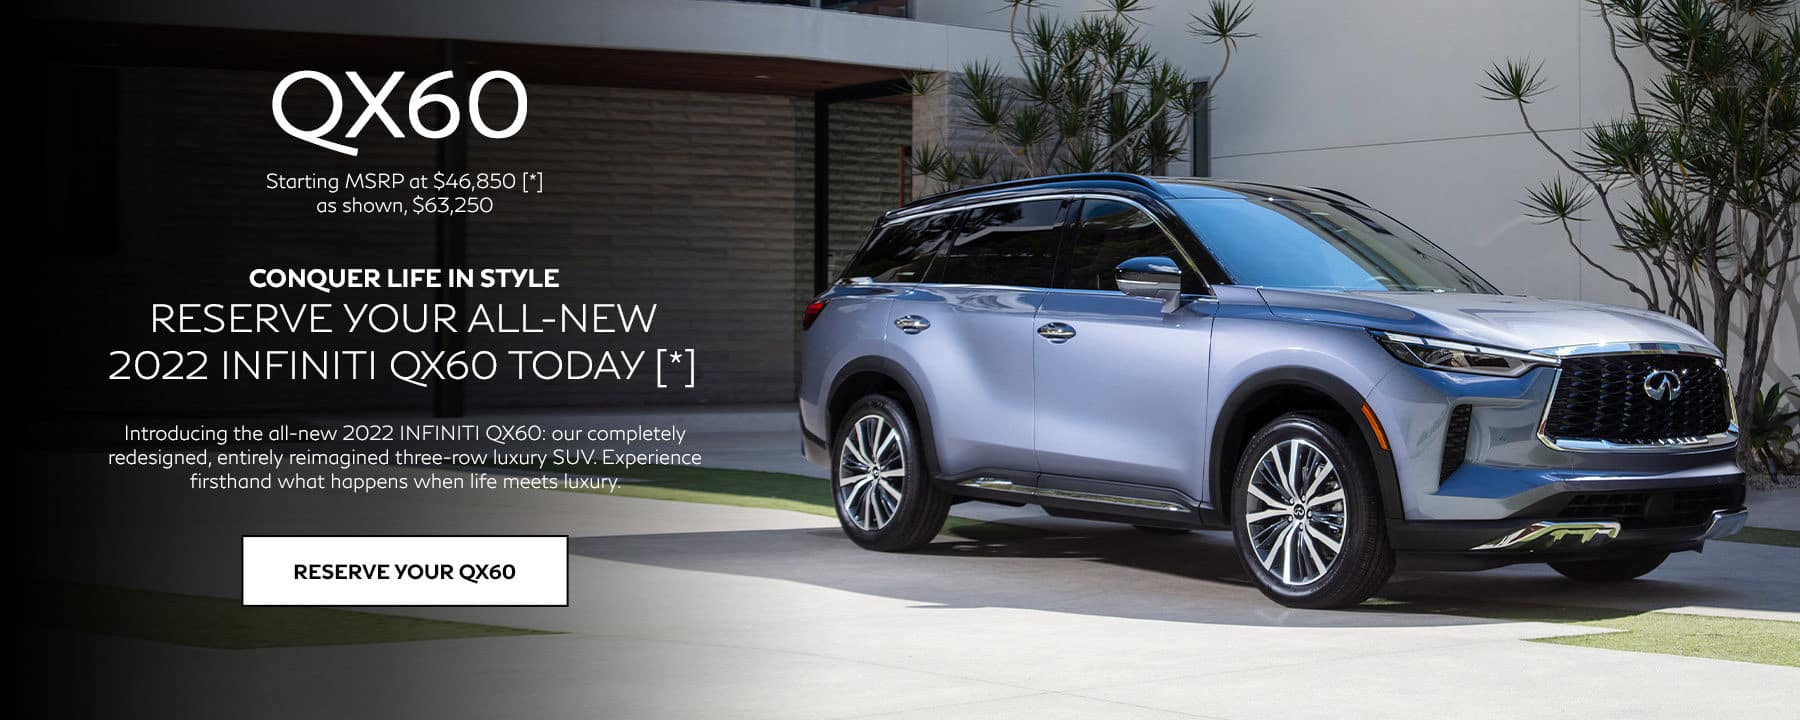 Reserve your all-new 2022 INFINITI QX60 today!